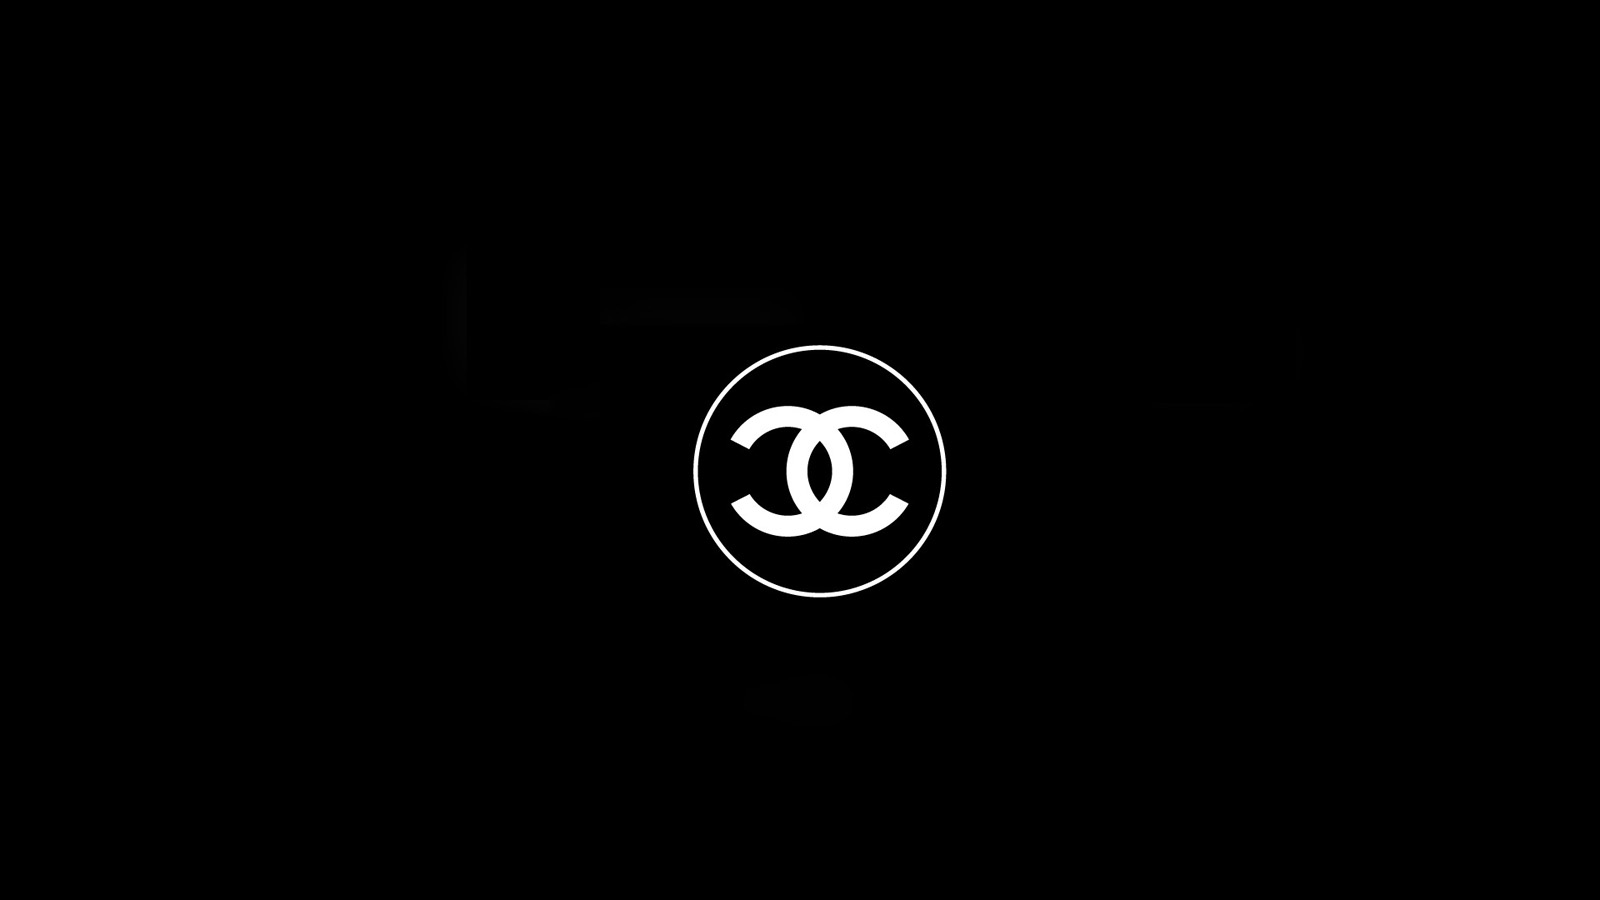 Chanel Wallpapers HD 1600x900